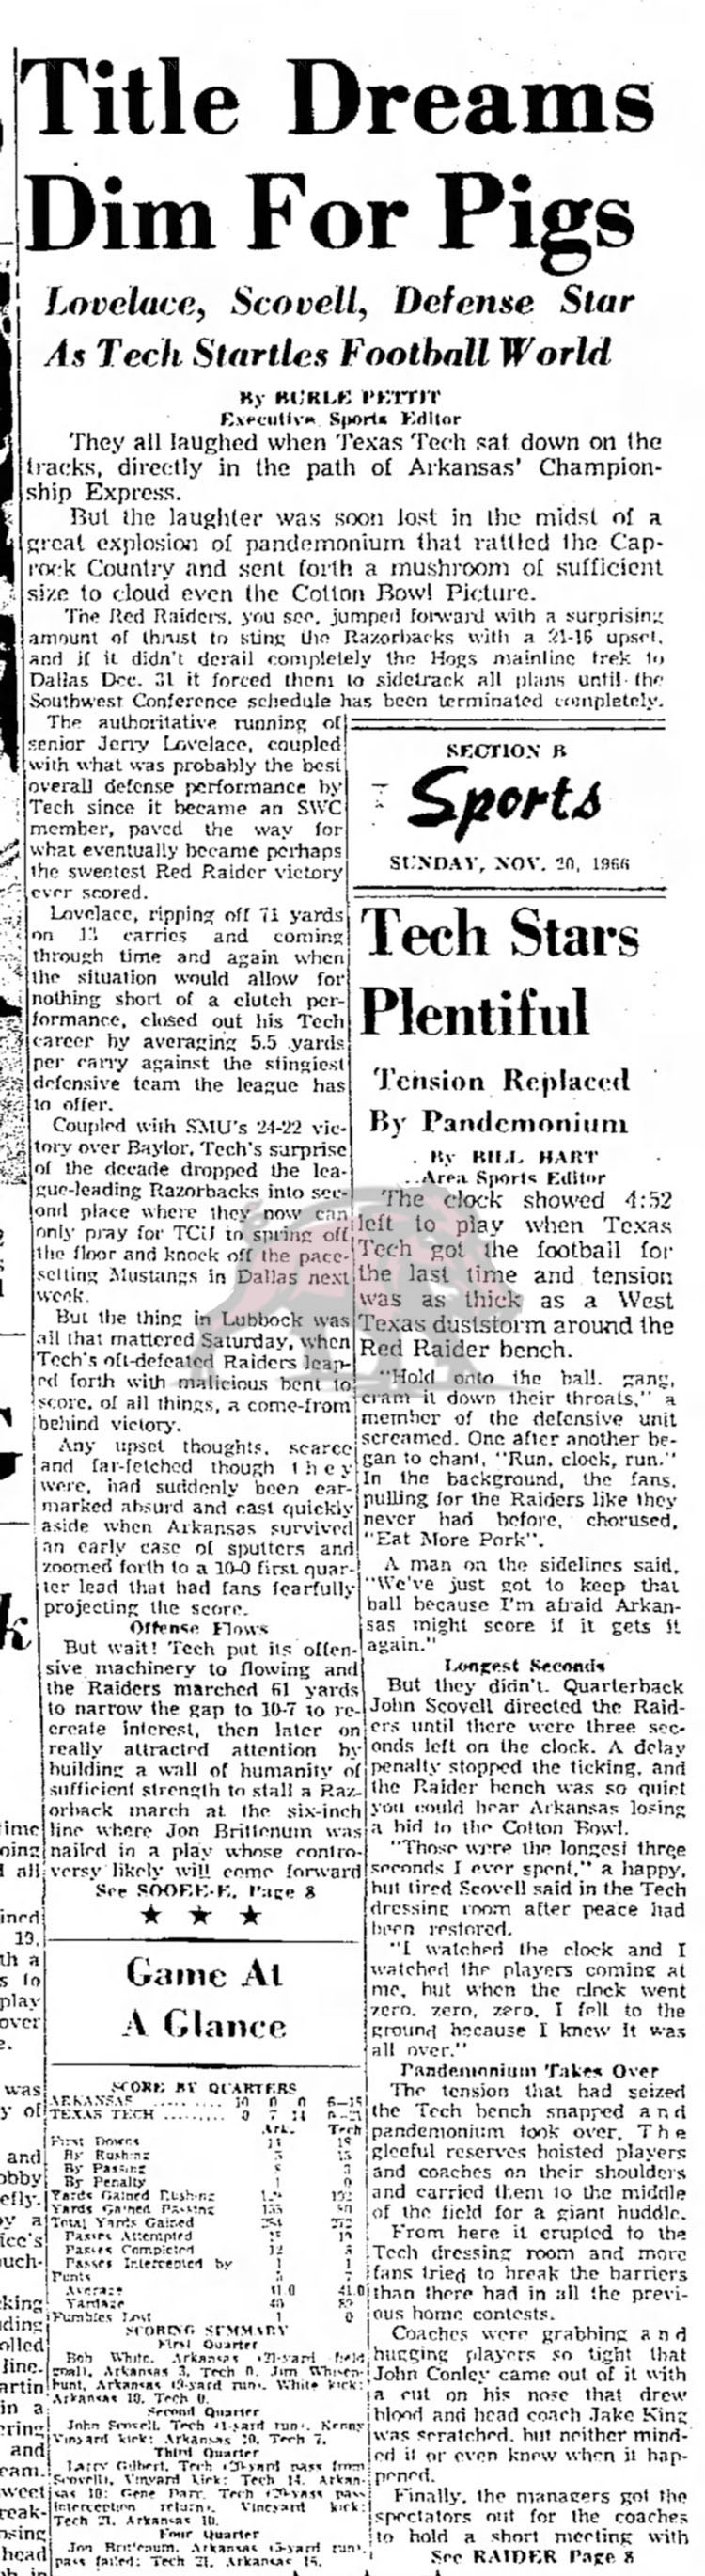 1966-11-20 Lubbock_Avalanche_Journal_Sun__Nov_20__1966 TTech Articles Part 1